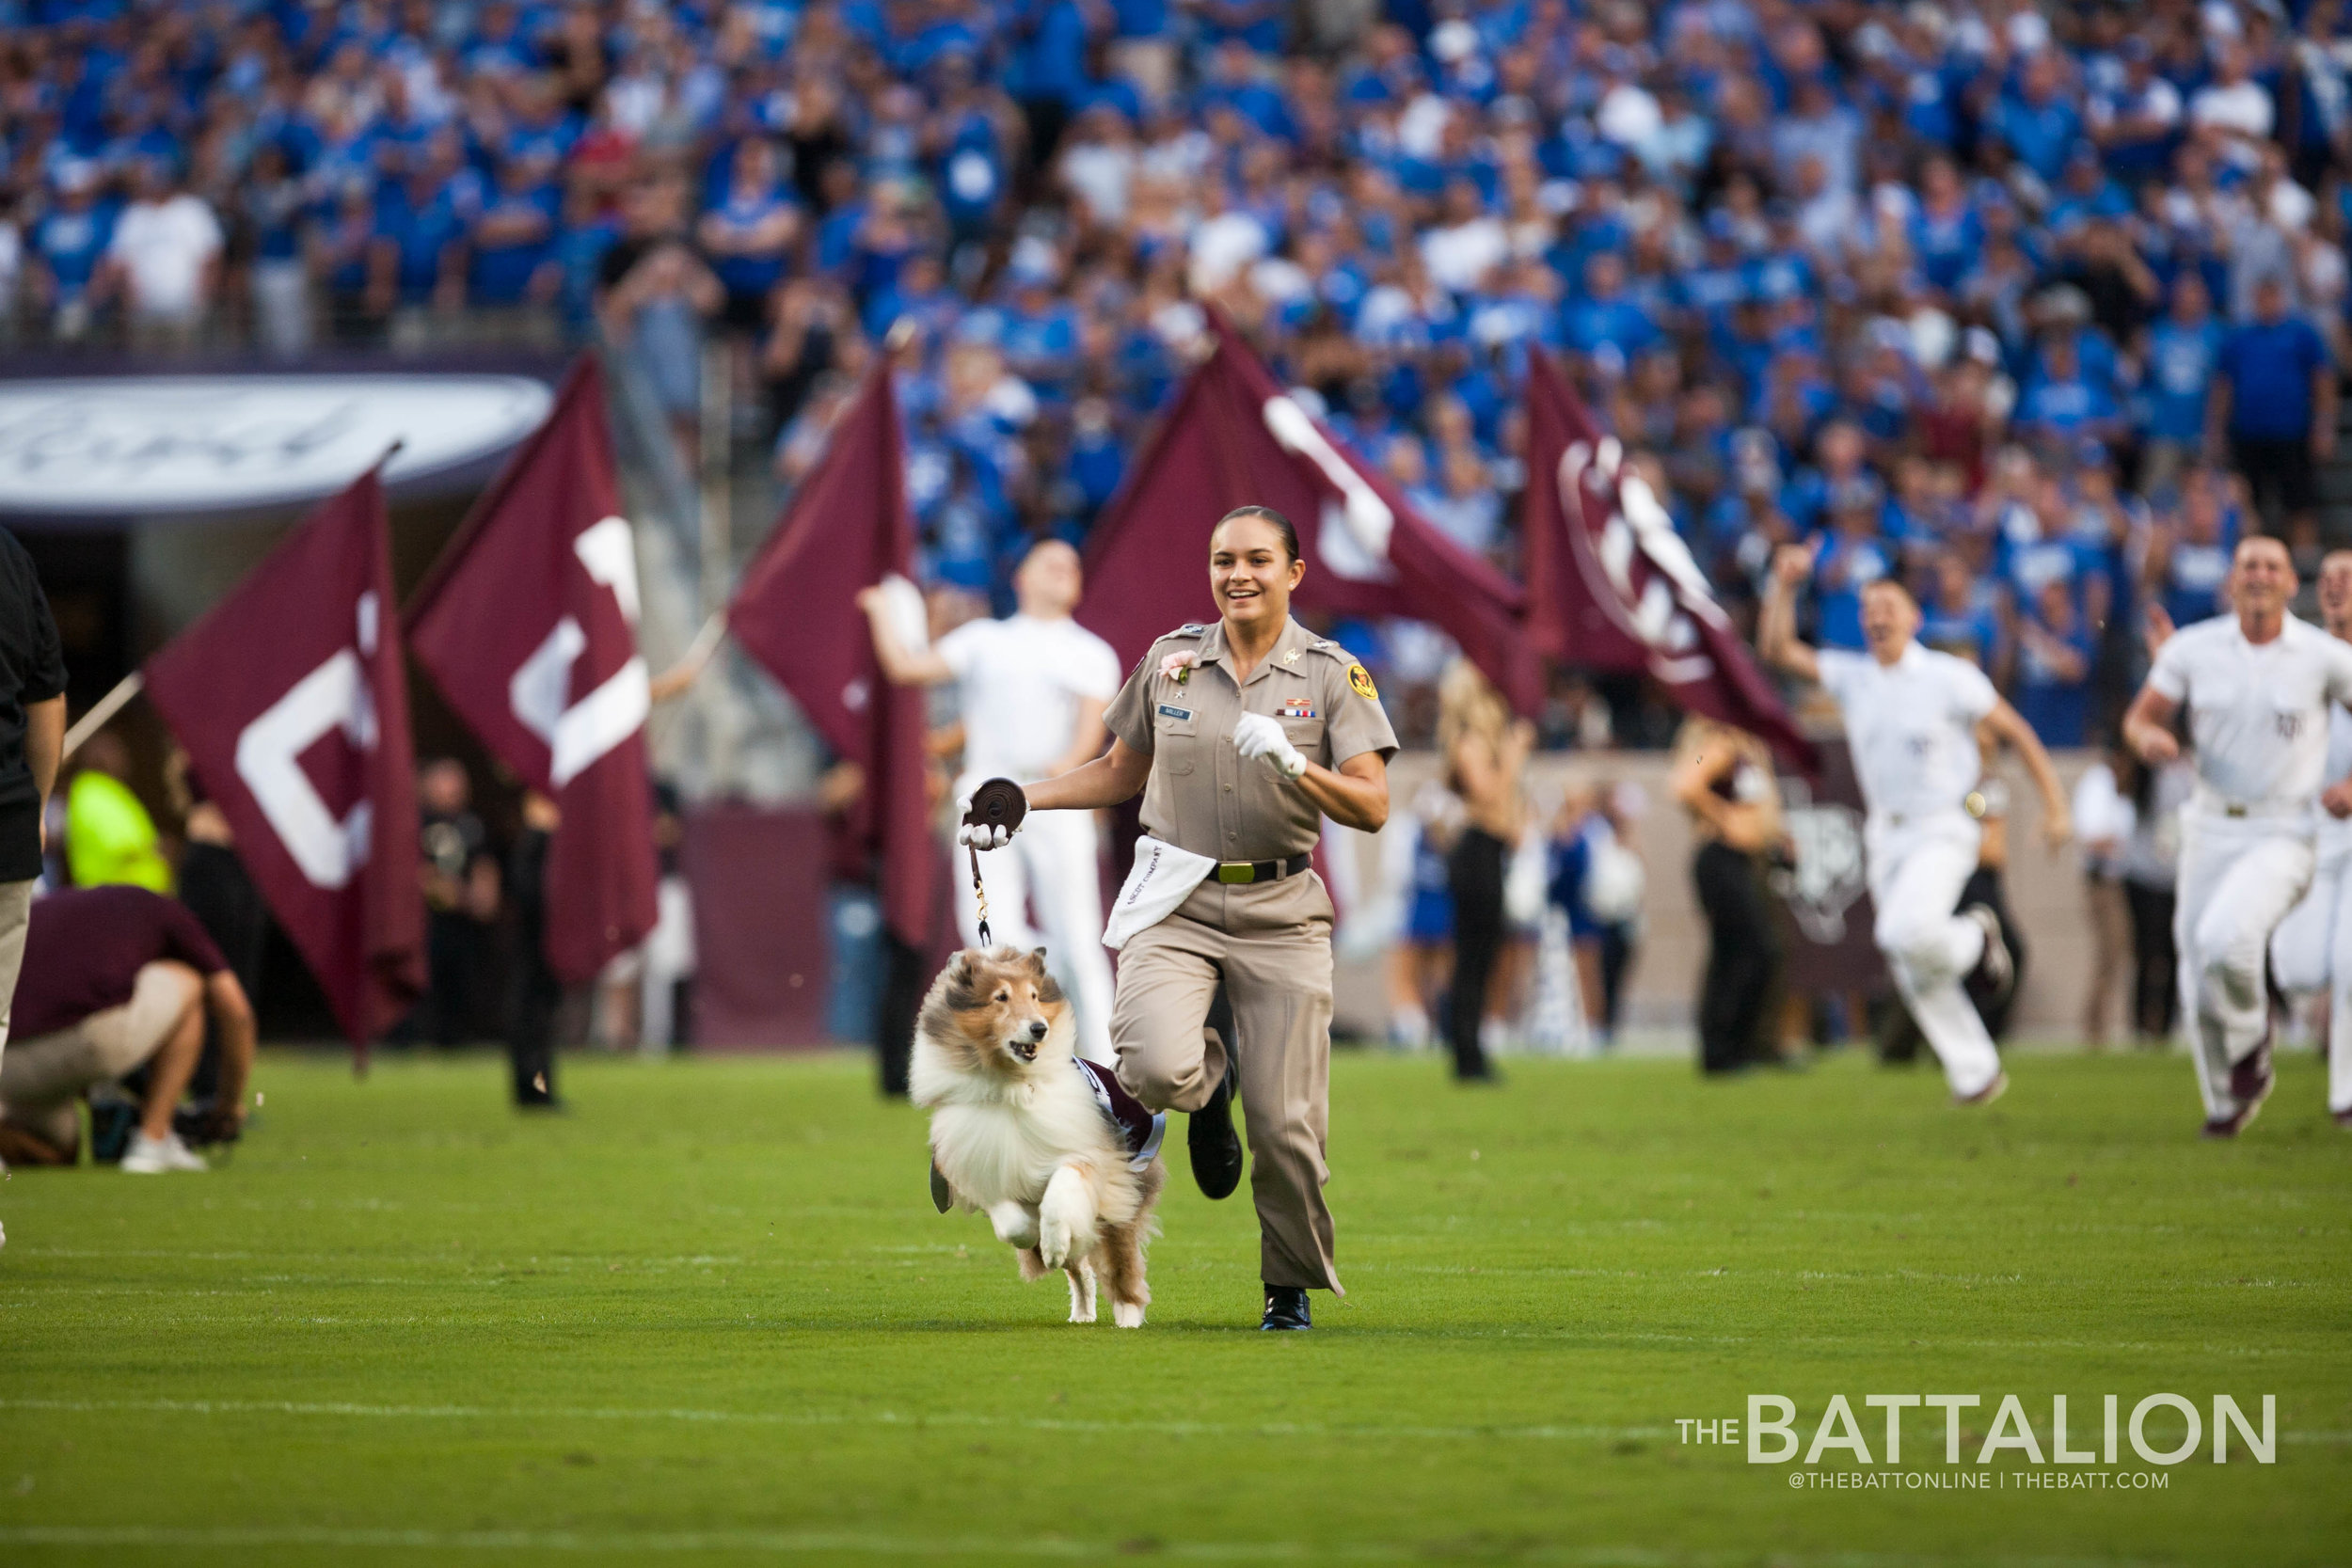 Mia Miller   runs onto Kyle Field with Reveille IX during an Aggie football game.   Photo by Jesse Everett.